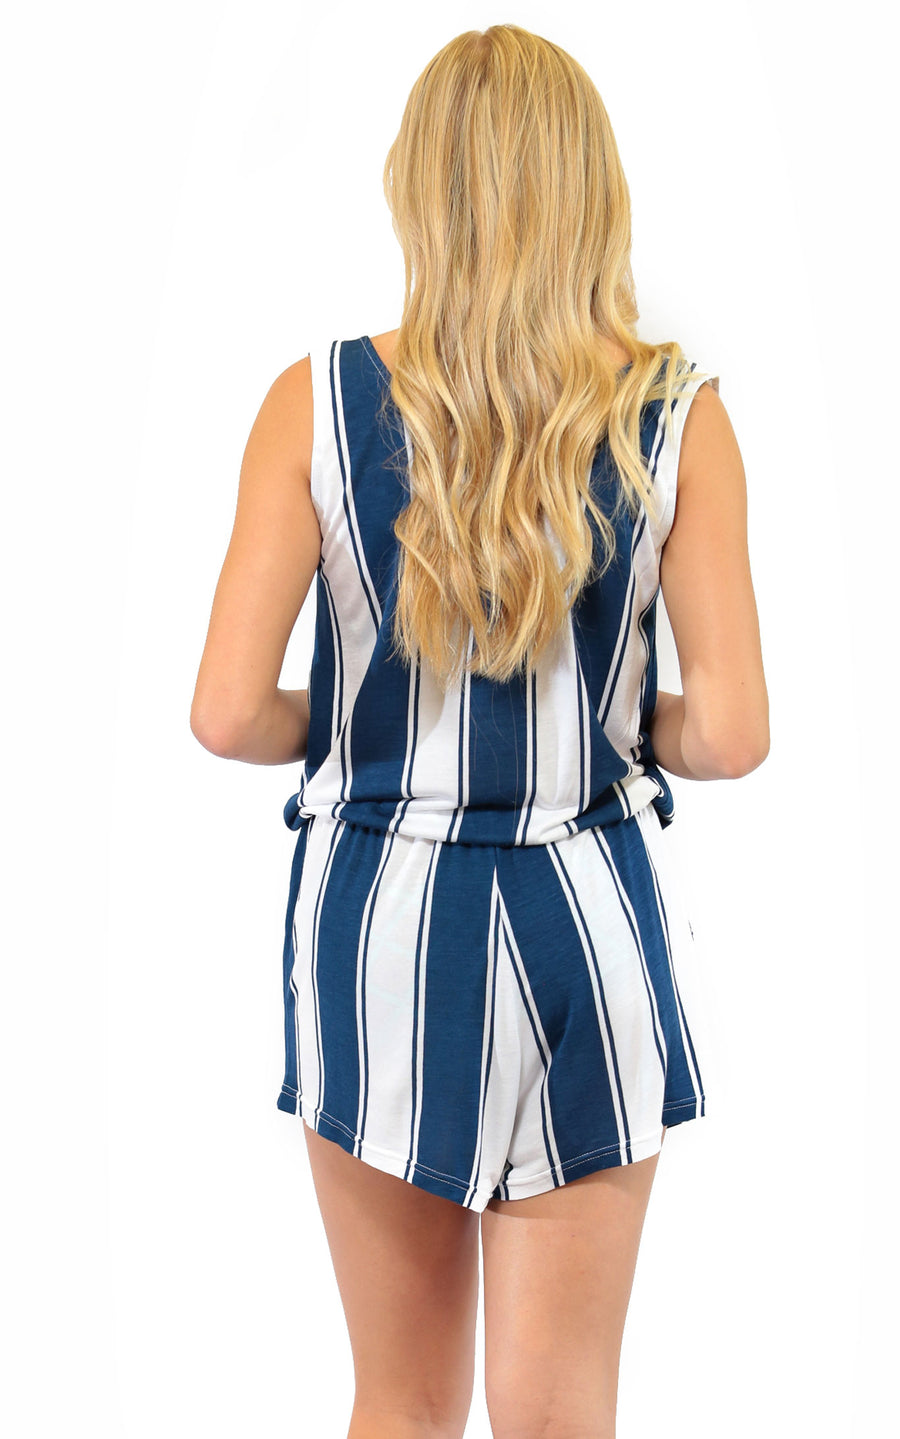 All For Color-Cabana Stripe Callie Romper - FINAL SALE-Rompers